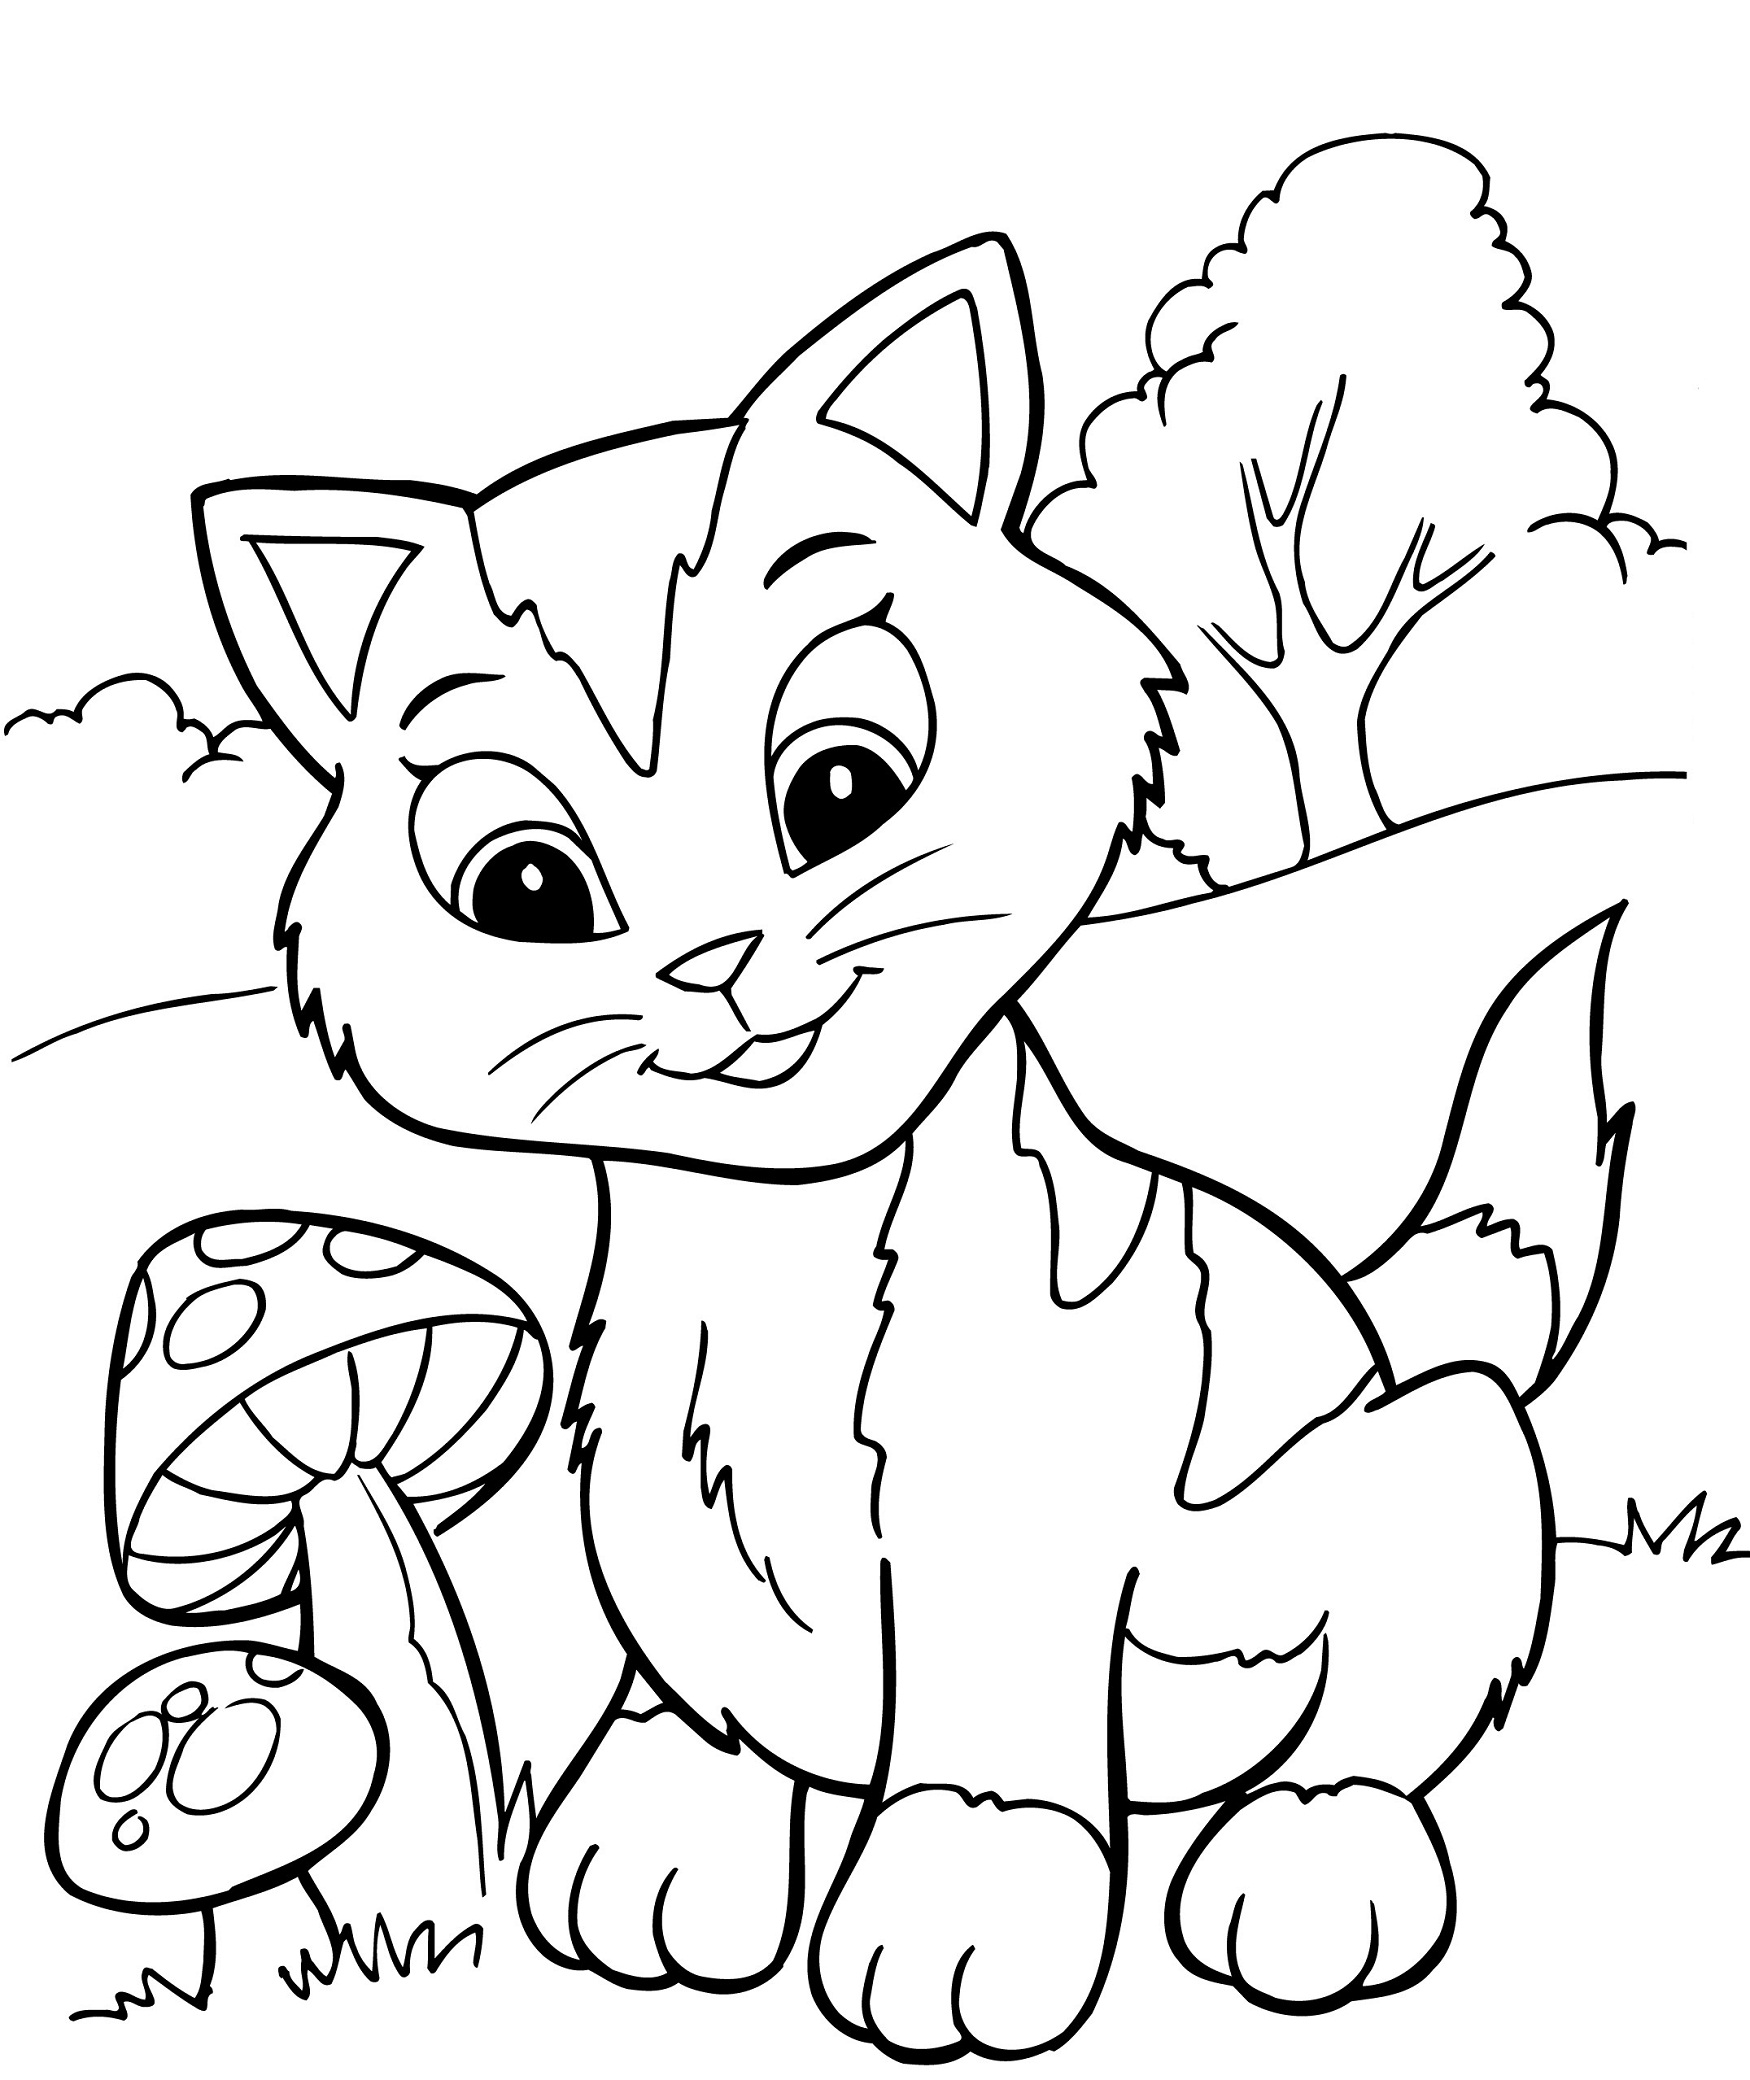 1750x2080 Now Cute Kitten Coloring Pages Free Printable For Kids Best